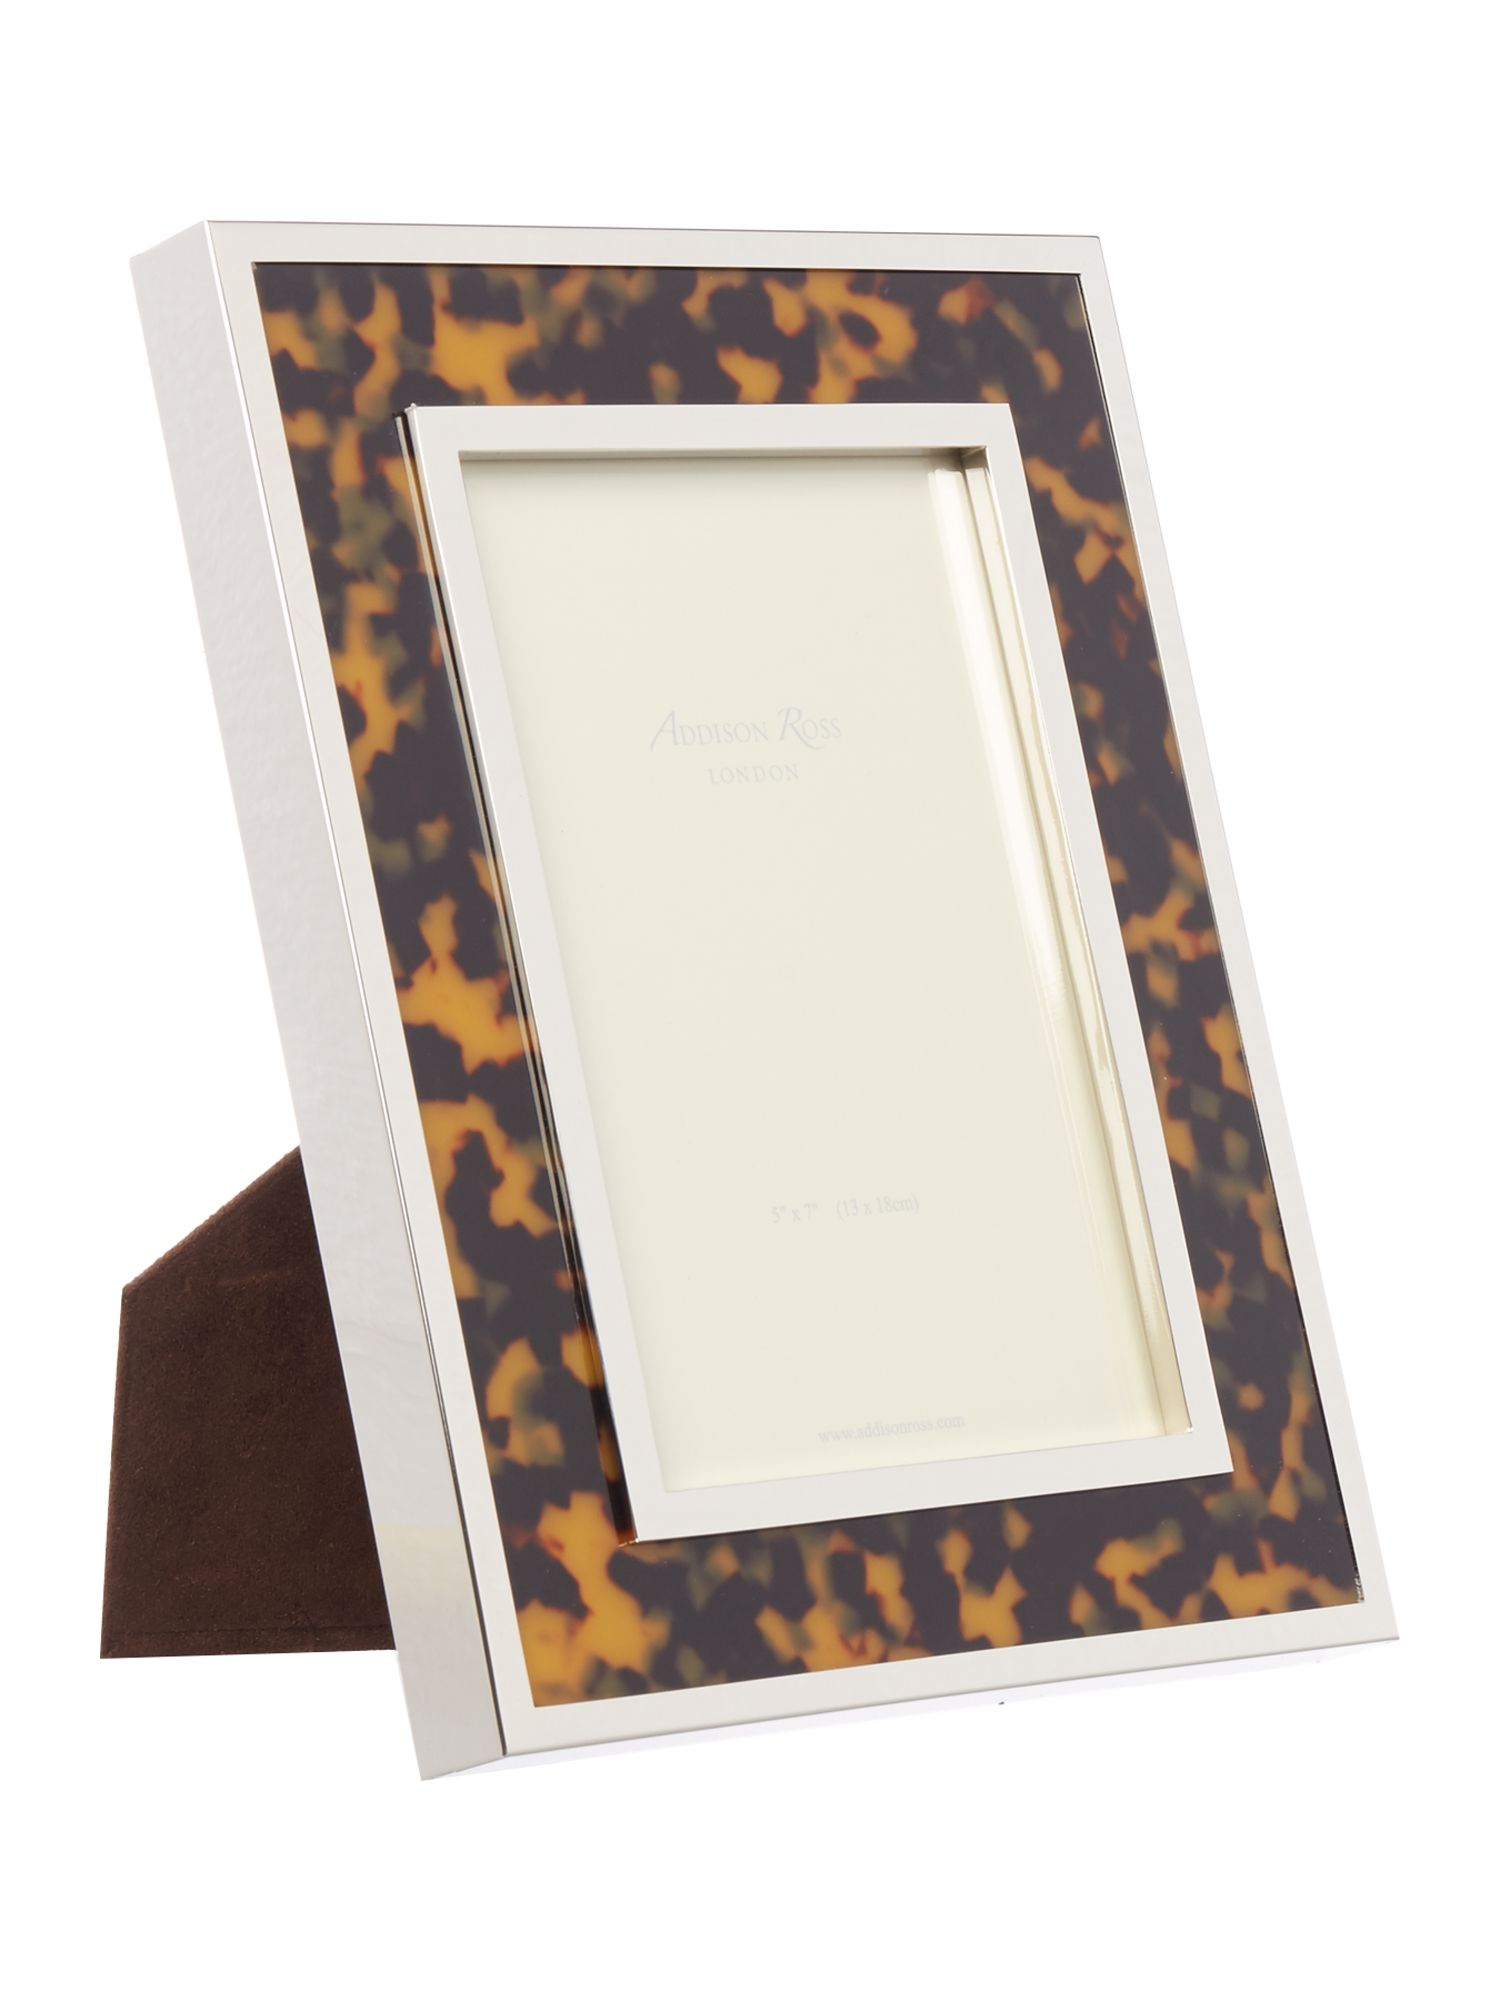 Image of Addison Ross Faux Tortoiseshell Frame 5x7, Green/Brown